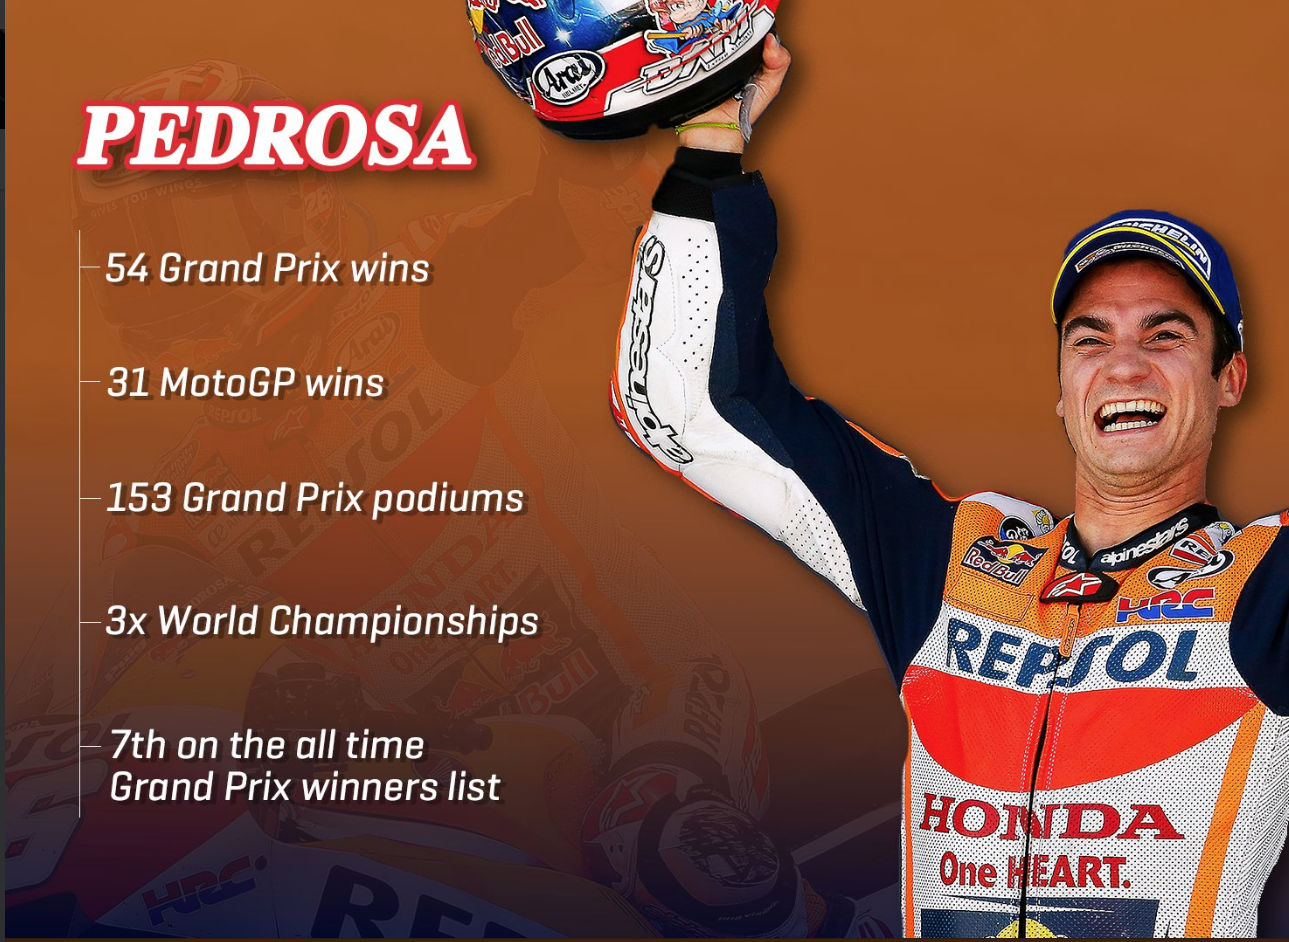 Dani Pedrosa Retiring From Grand Prix Racing